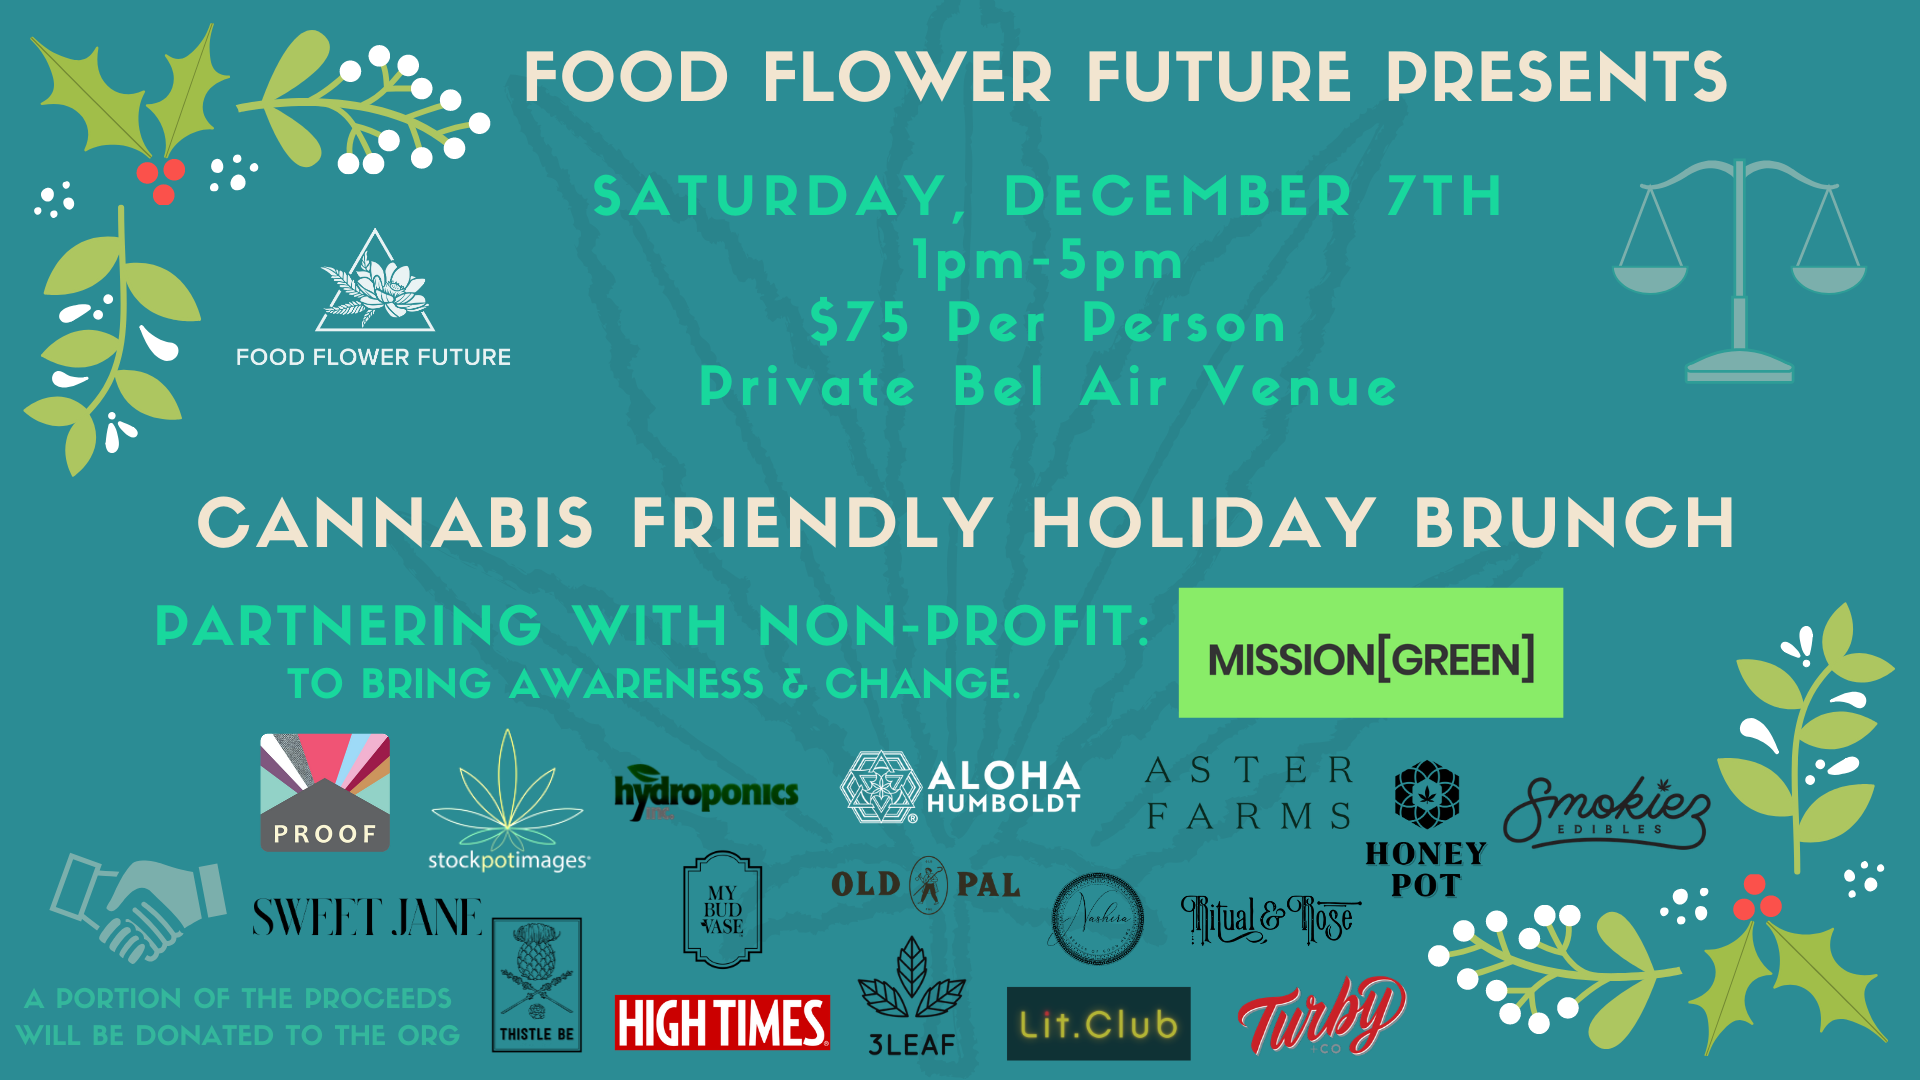 Cannabis Friendly Holiday Brunch